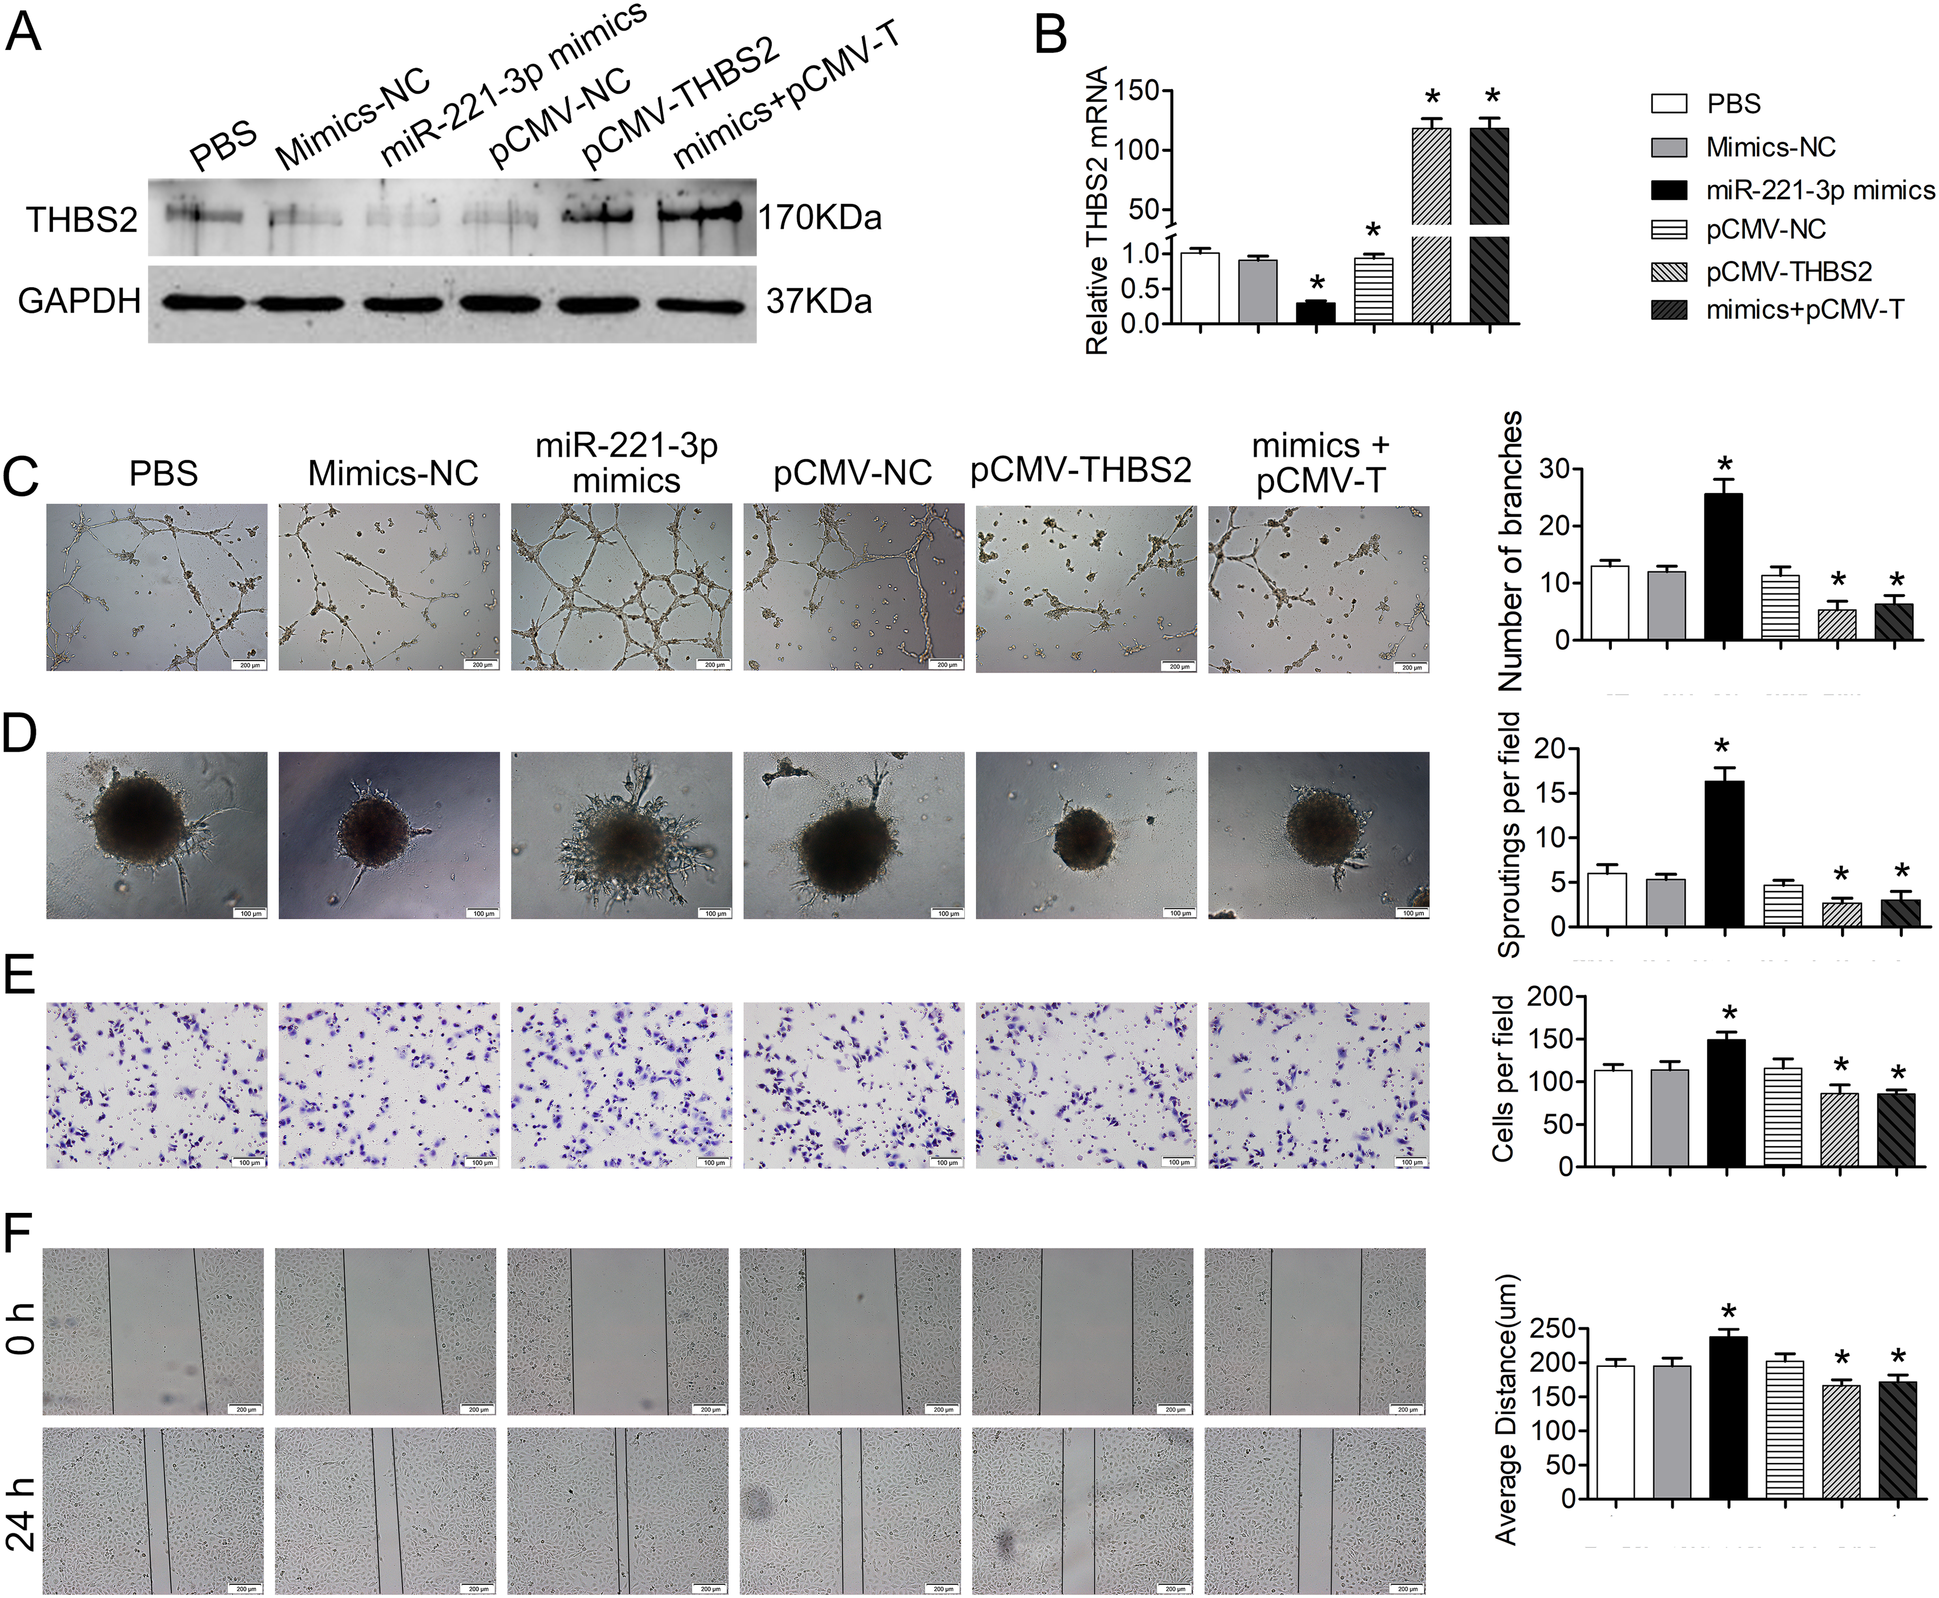 Cancer-derived exosomal miR-221-3p promotes angiogenesis by